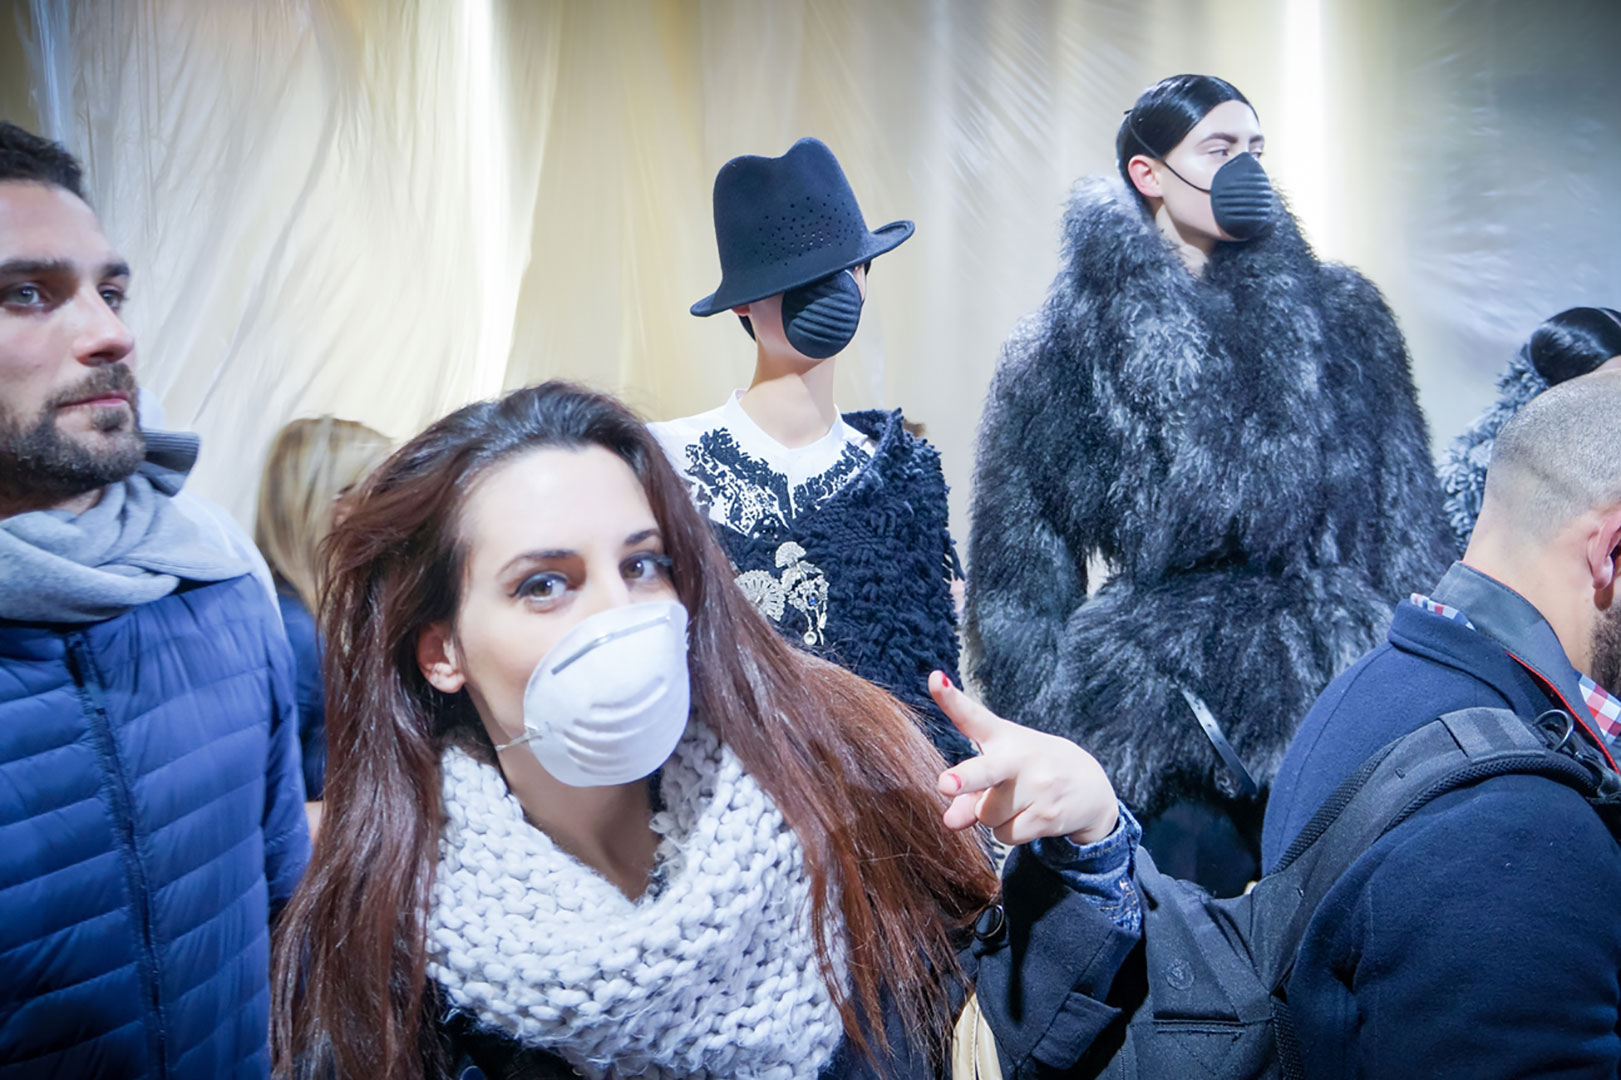 paris-fashion-week-vandevorst-fw16-photo-by-polina-paraskevopoulou-la-vie-en-blog-paris-41